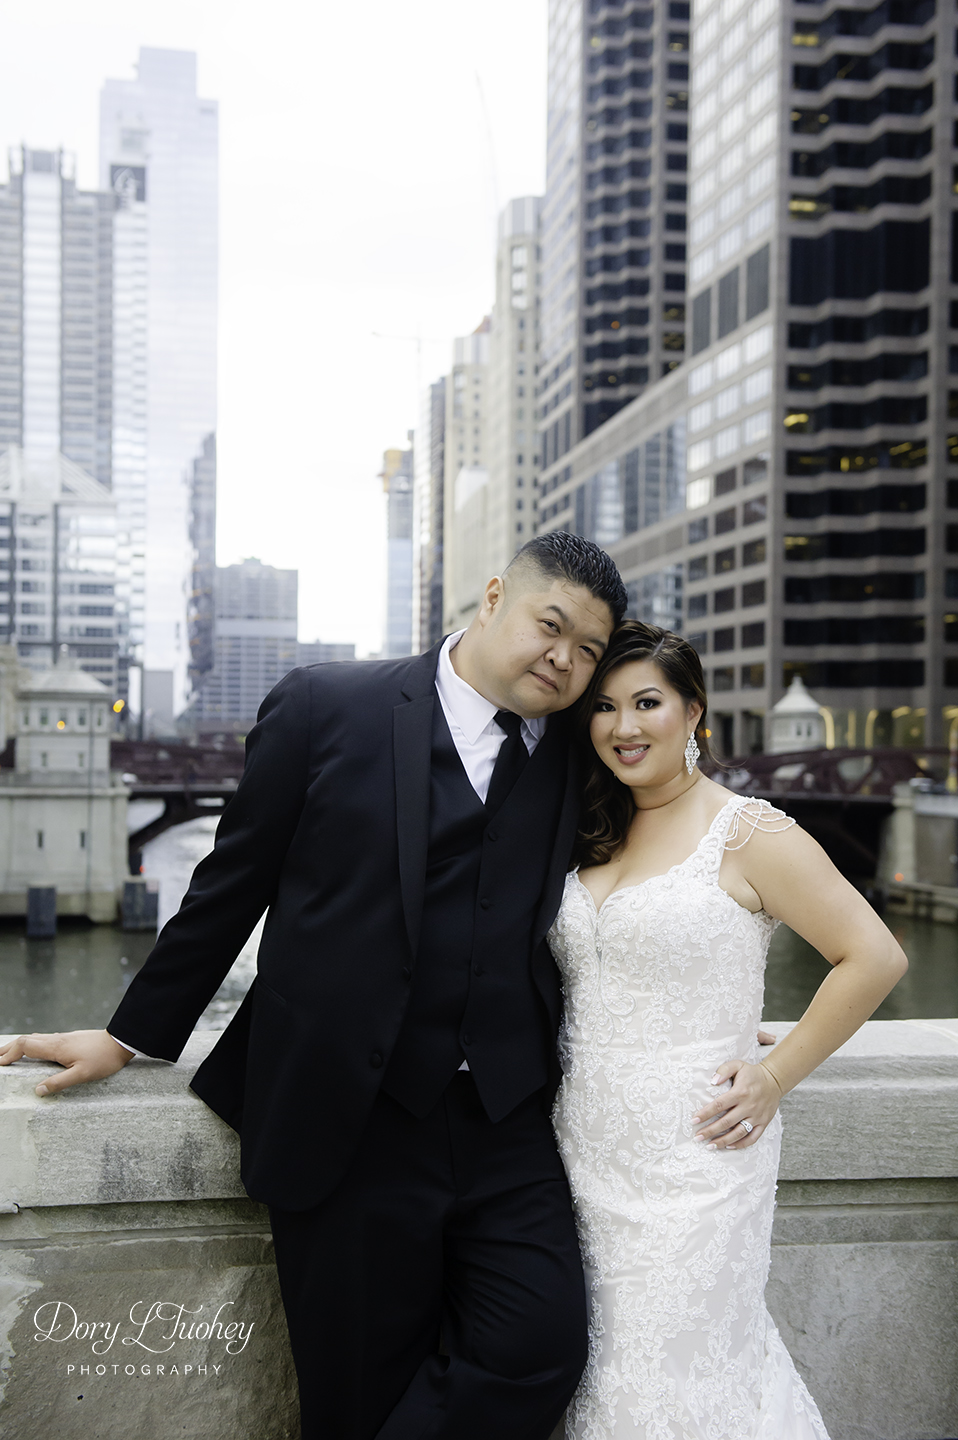 Chicago_wedding_photographer_bride_union_station_laos_thai_dory_10.jpg